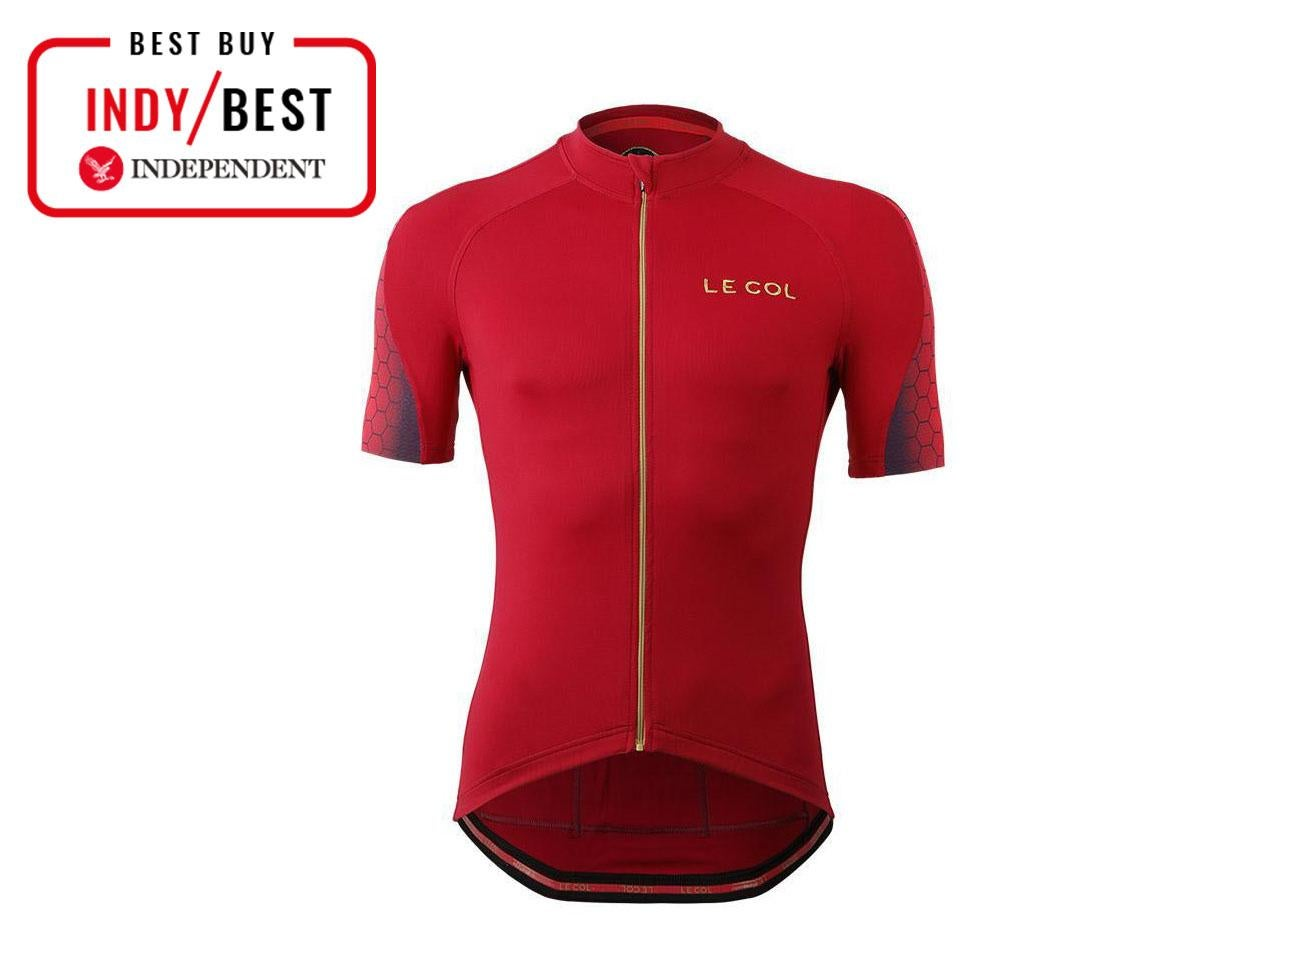 d55b550f947 Hors catégorie are the toughest climbs in the Tour de France – the very  best if you re a fan of the mountains – and this gorgeous jersey is at the  pinnacle ...